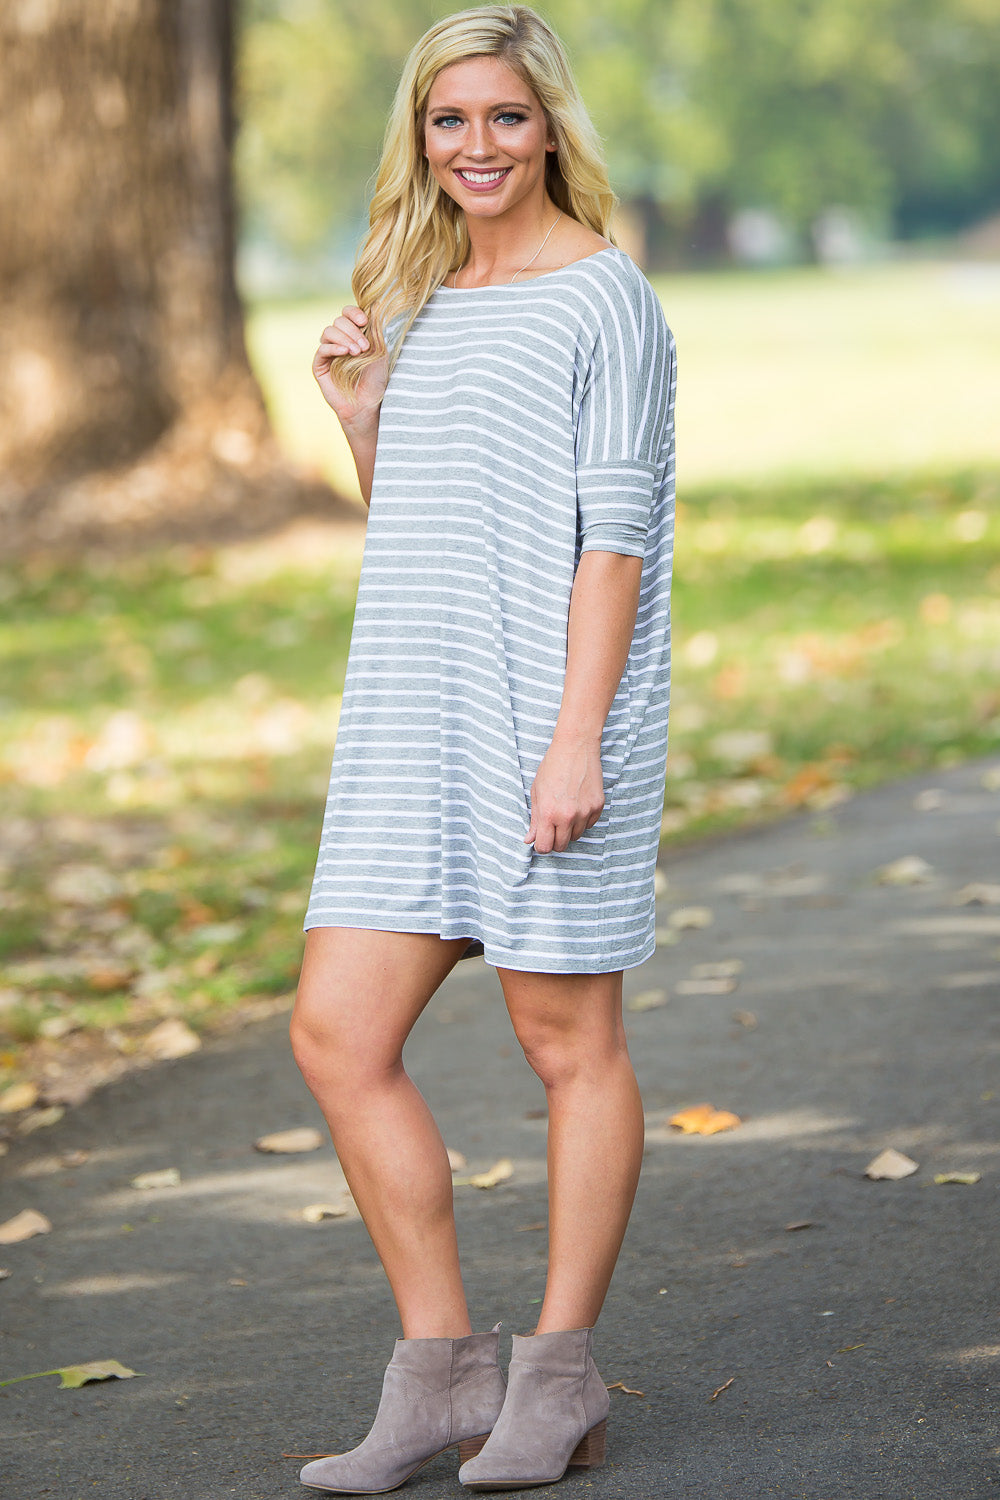 Half Sleeve Piko Tunic - Heather/White - Piko Clothing